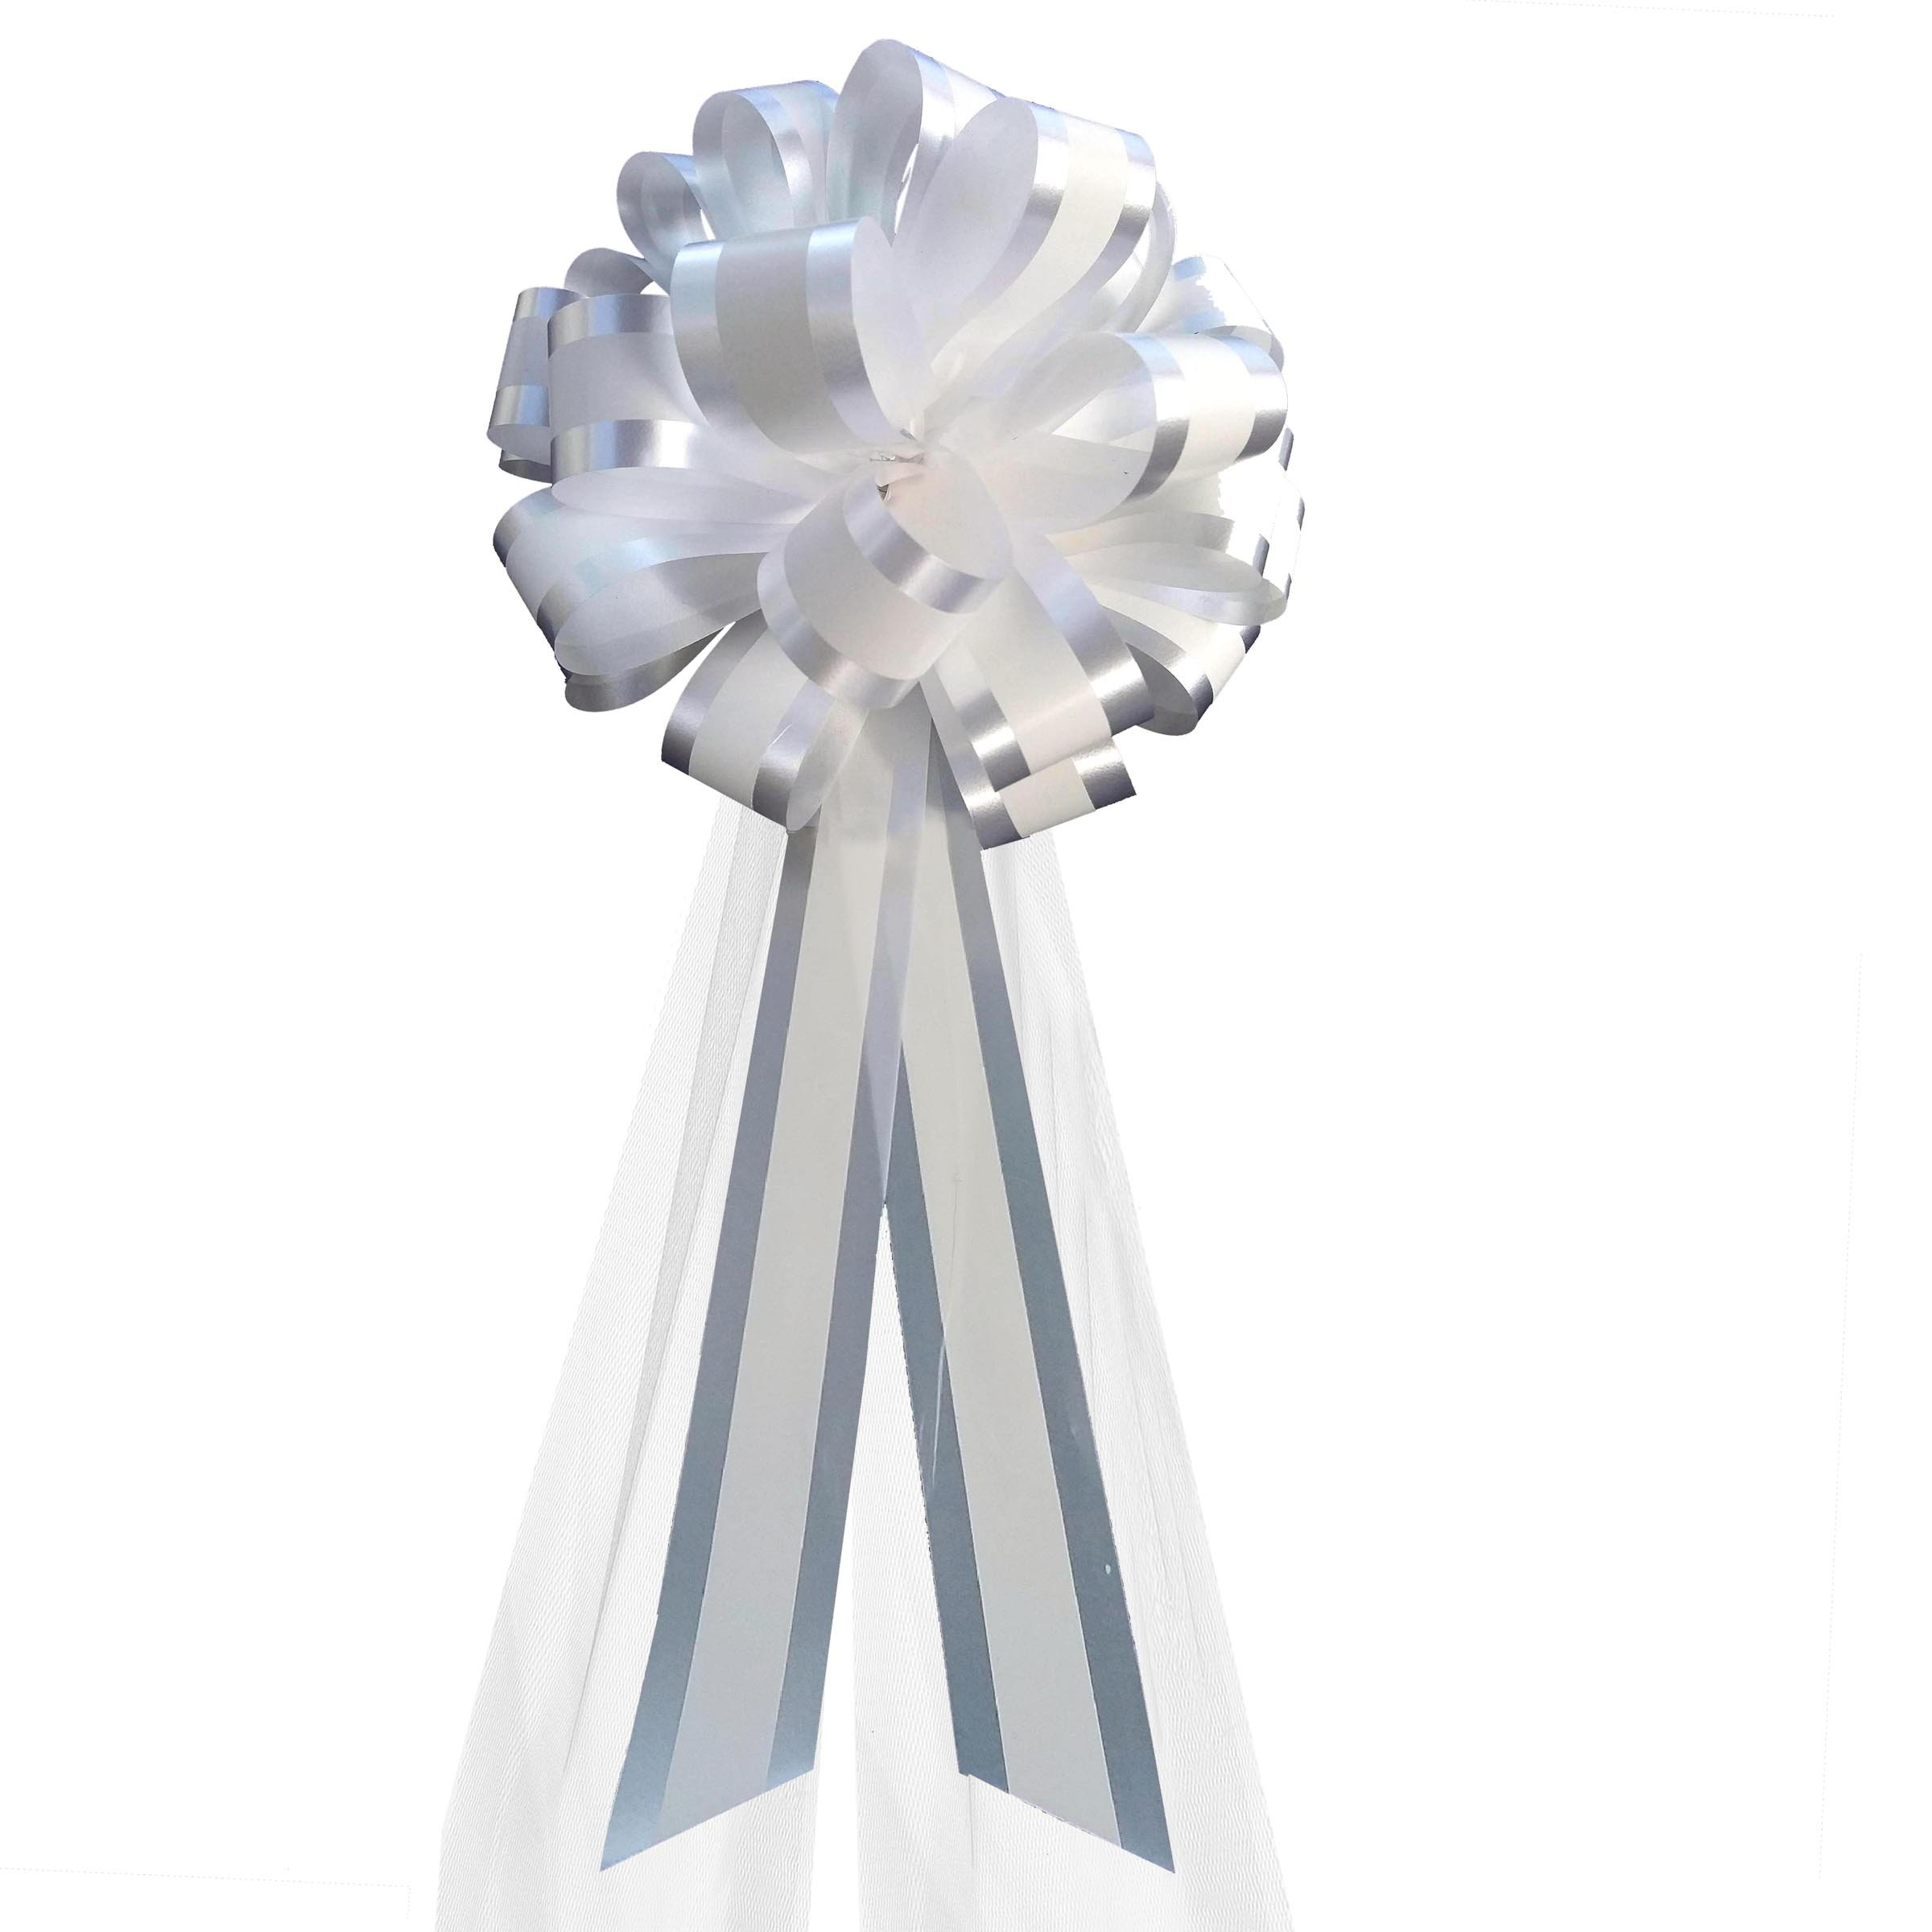 Best Bow Decorations For Wedding Amazon